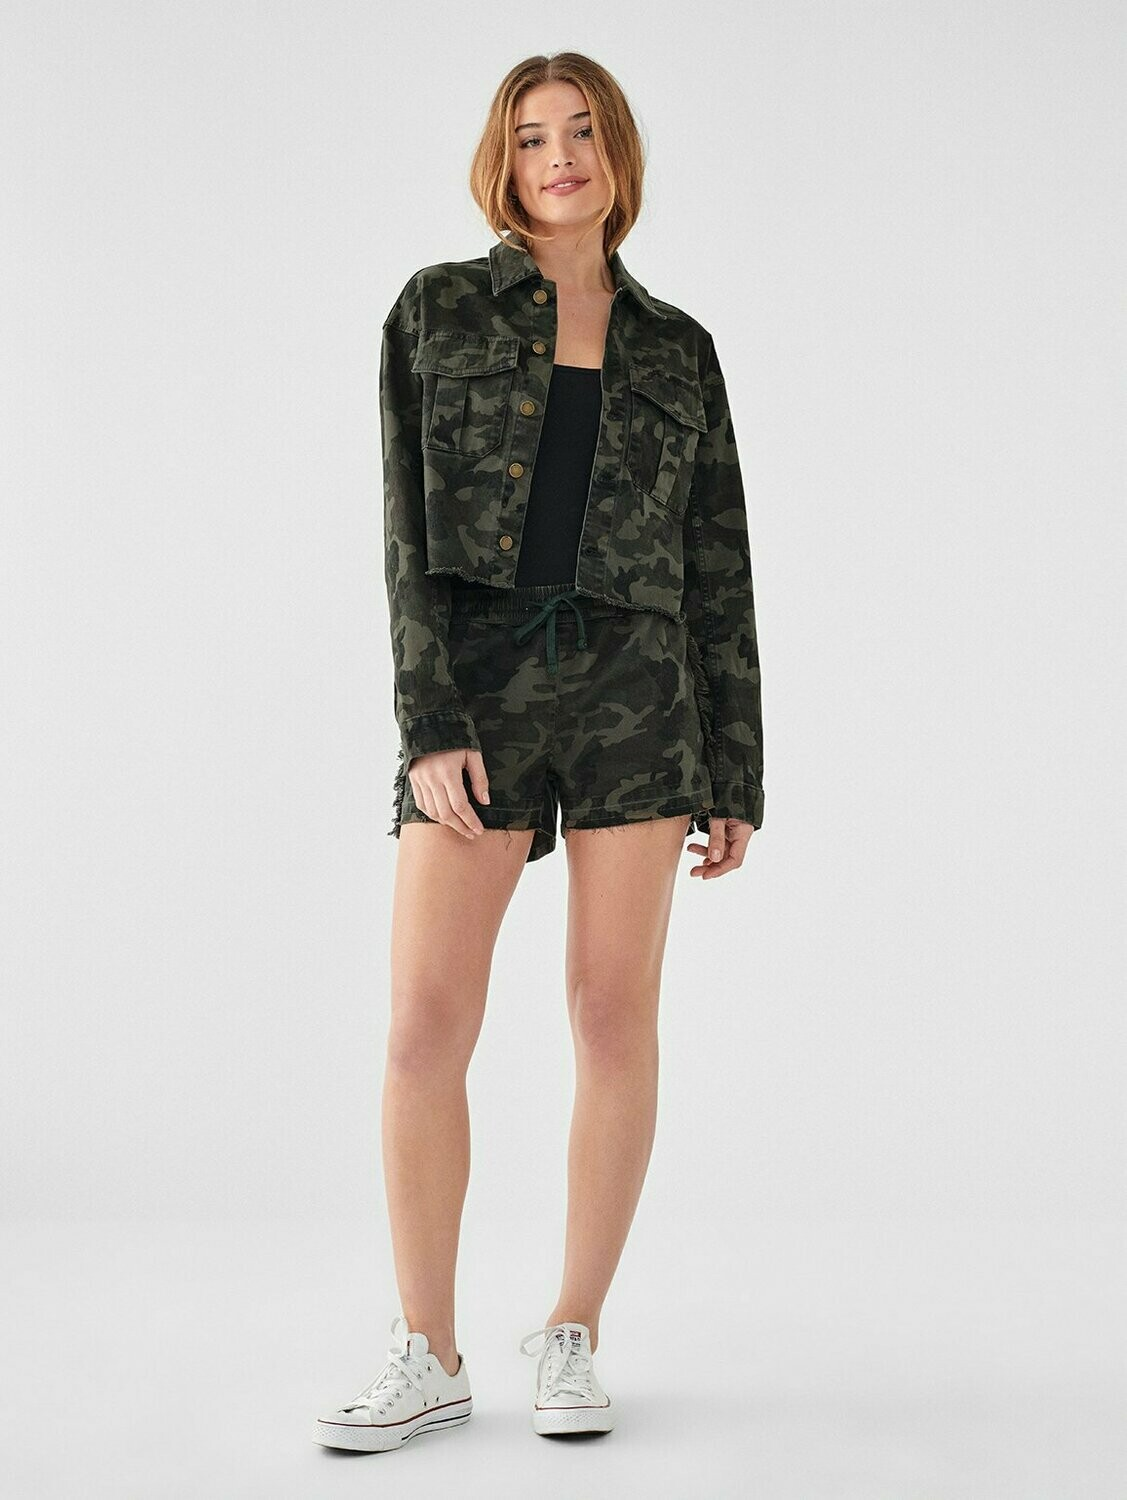 DL 1961 Annie Cropped Utility Jacket in Camouflage